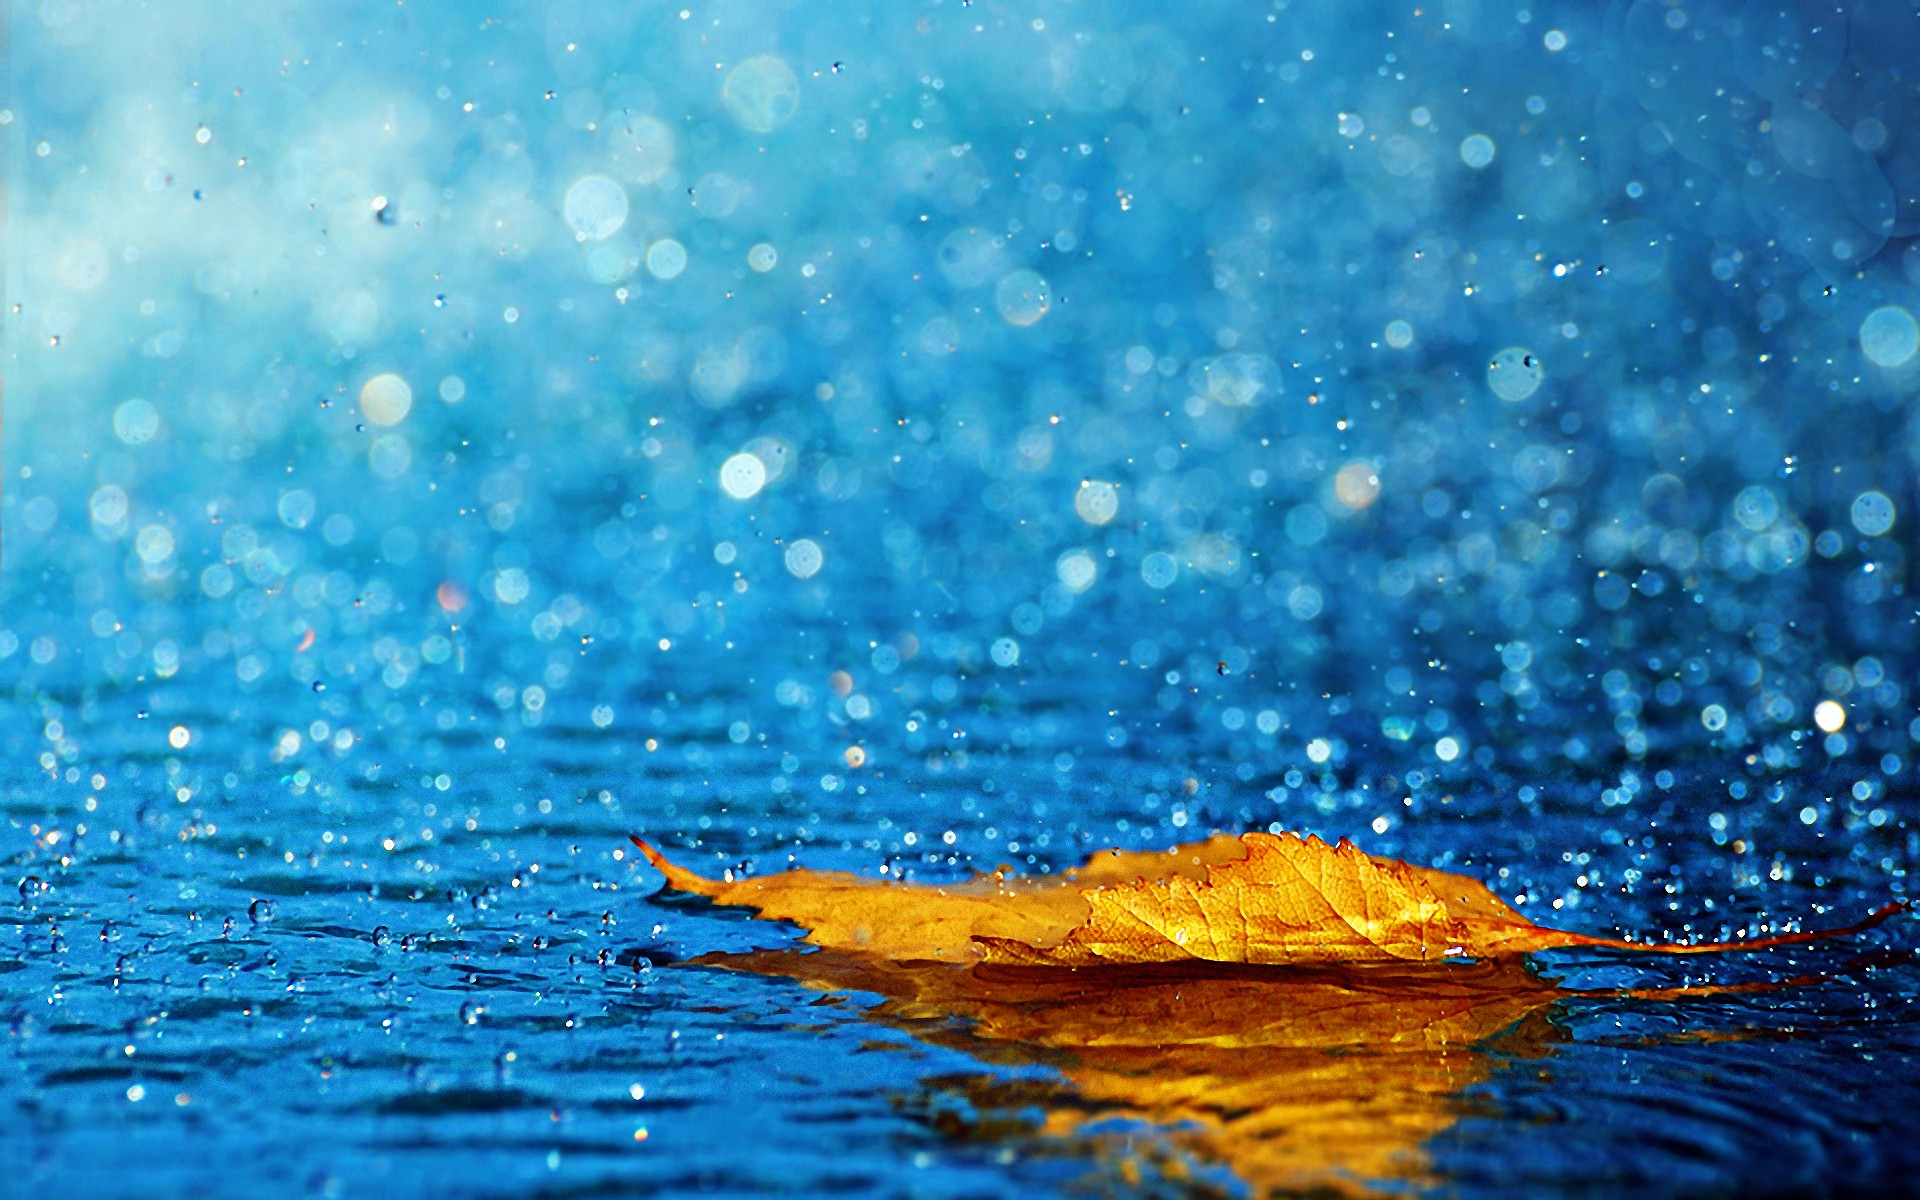 Rainy Background ① Download Free Beautiful Full Hd Backgrounds For